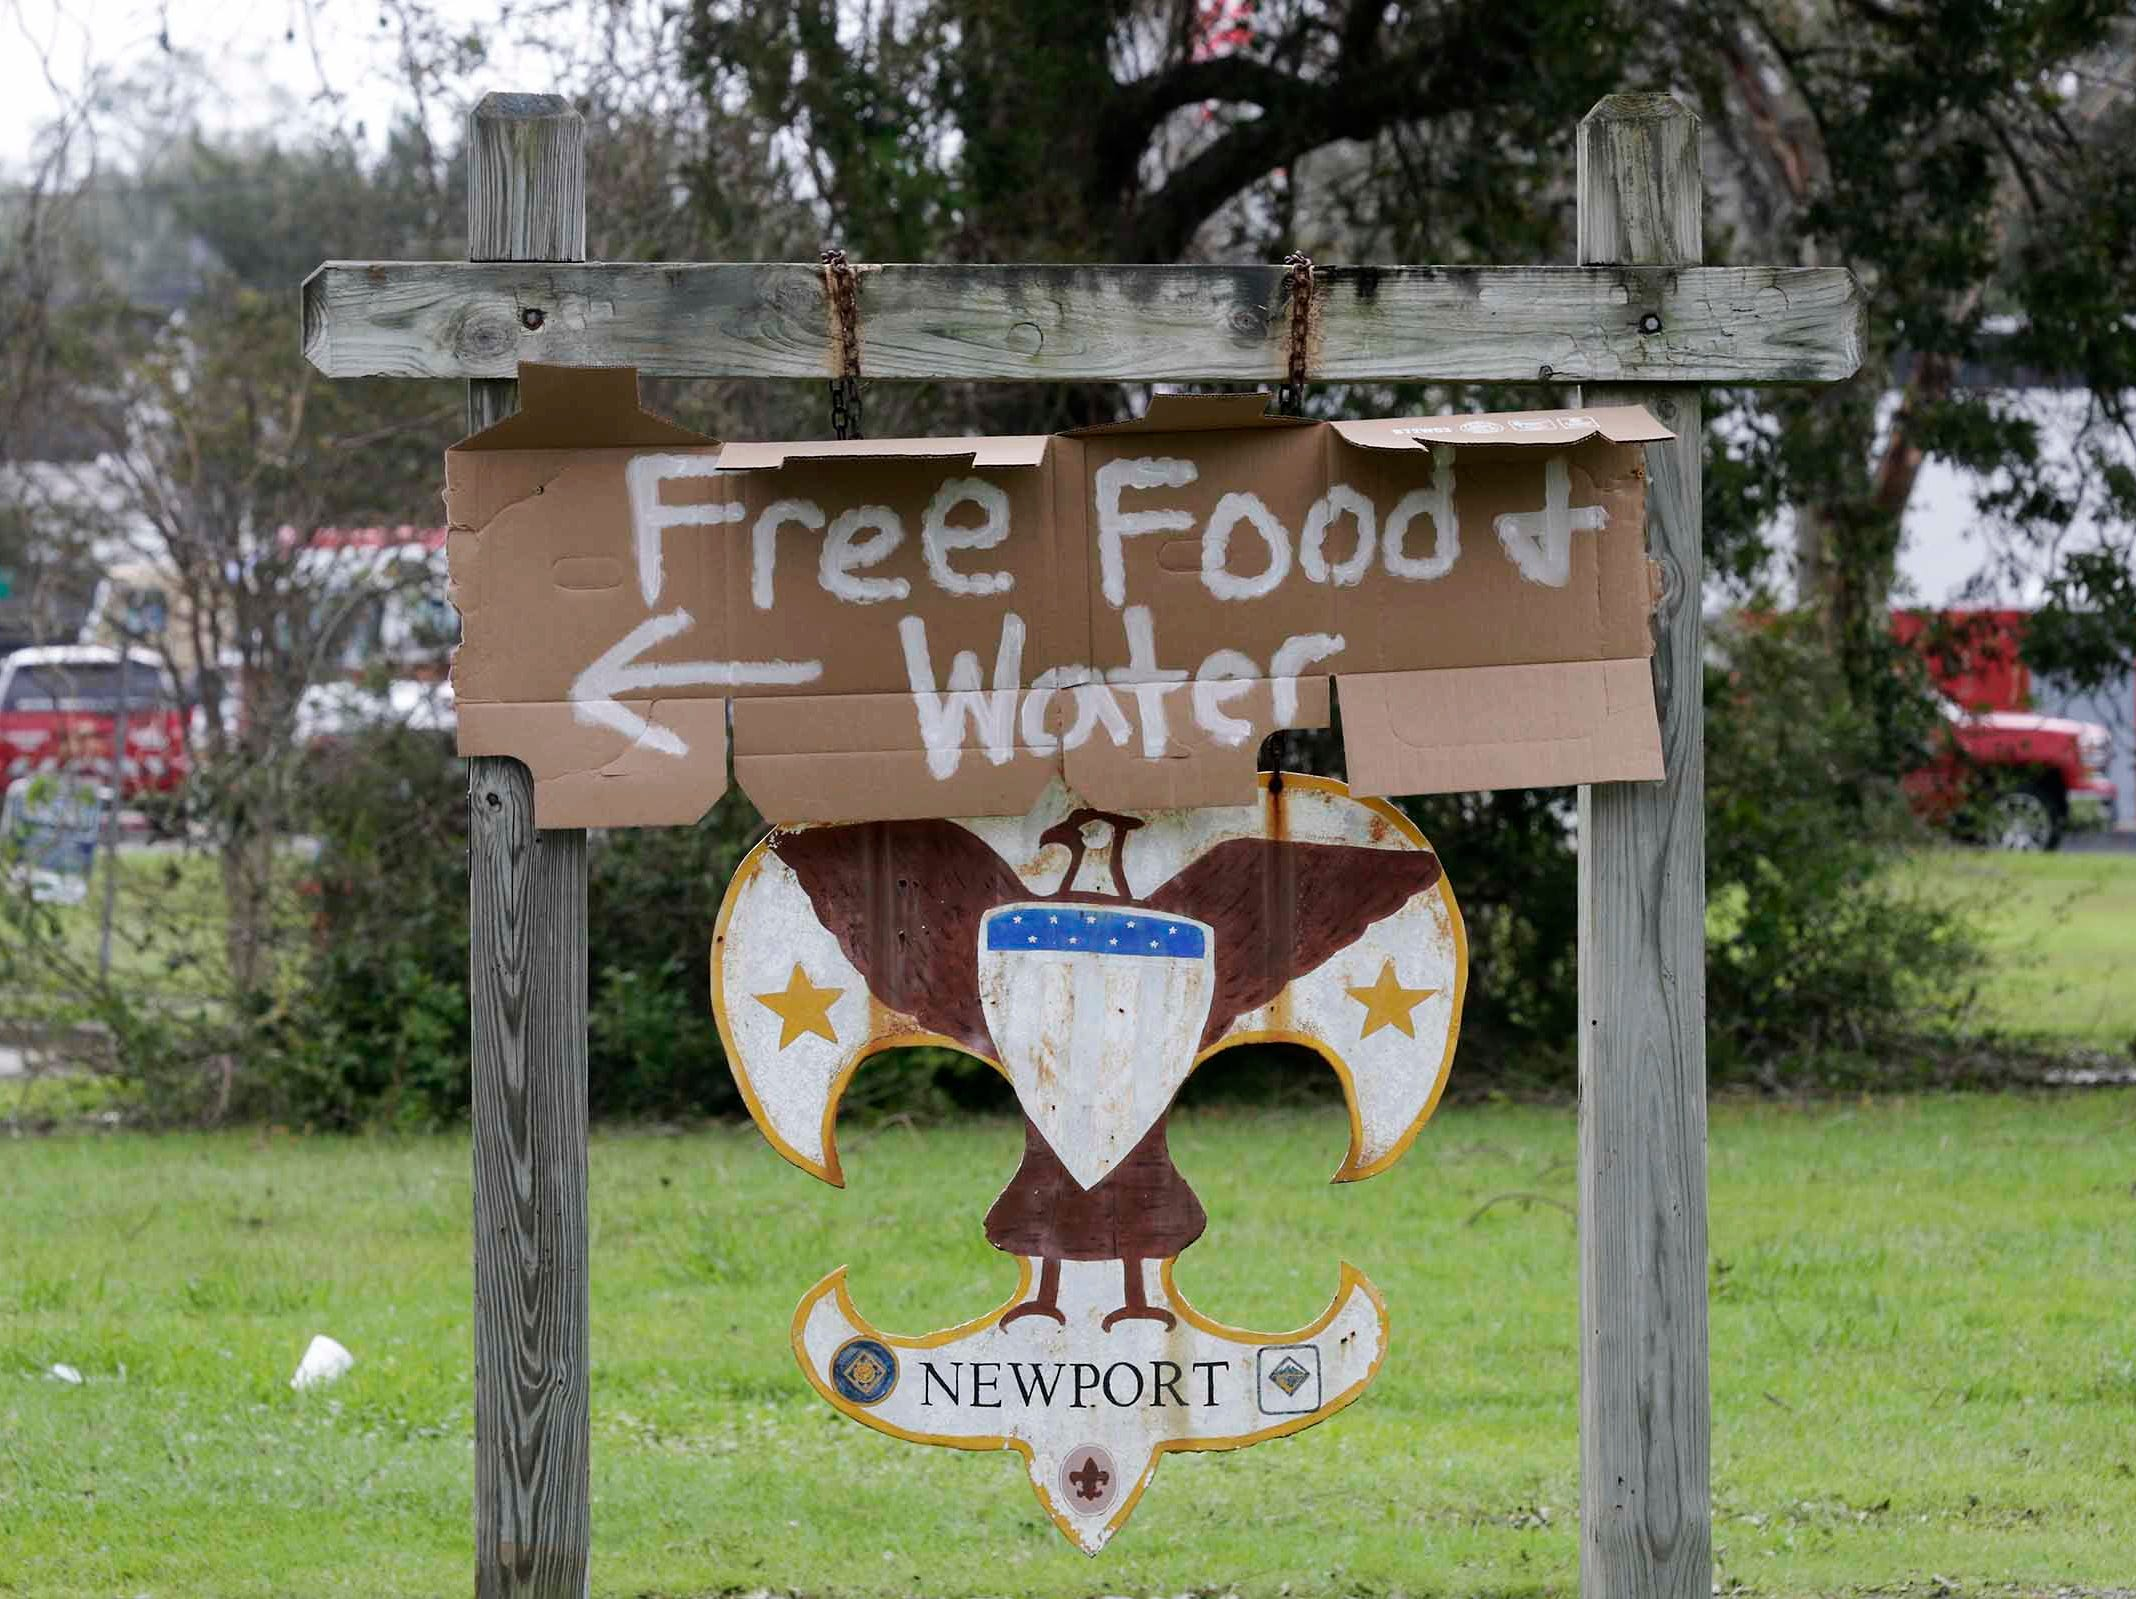 A Boy Scout hut sign offers free food and water after Hurricane Florence hit the Newport N.C., area on Monday, Sept. 17, 2018.